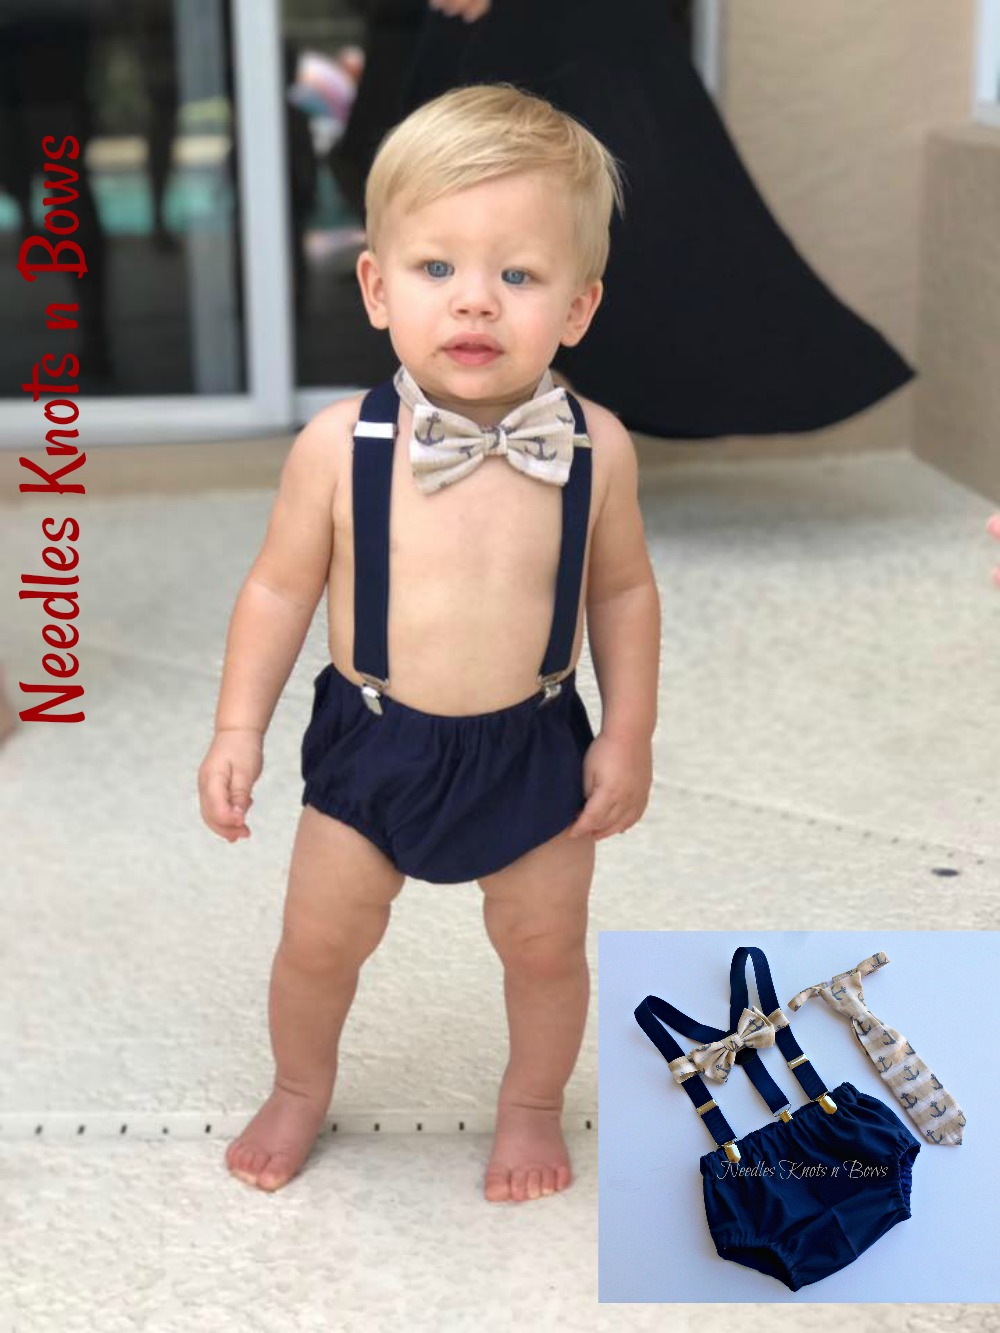 Swell First Birthday Boy Cake Smash Outfit Agbu Hye Geen Personalised Birthday Cards Petedlily Jamesorg